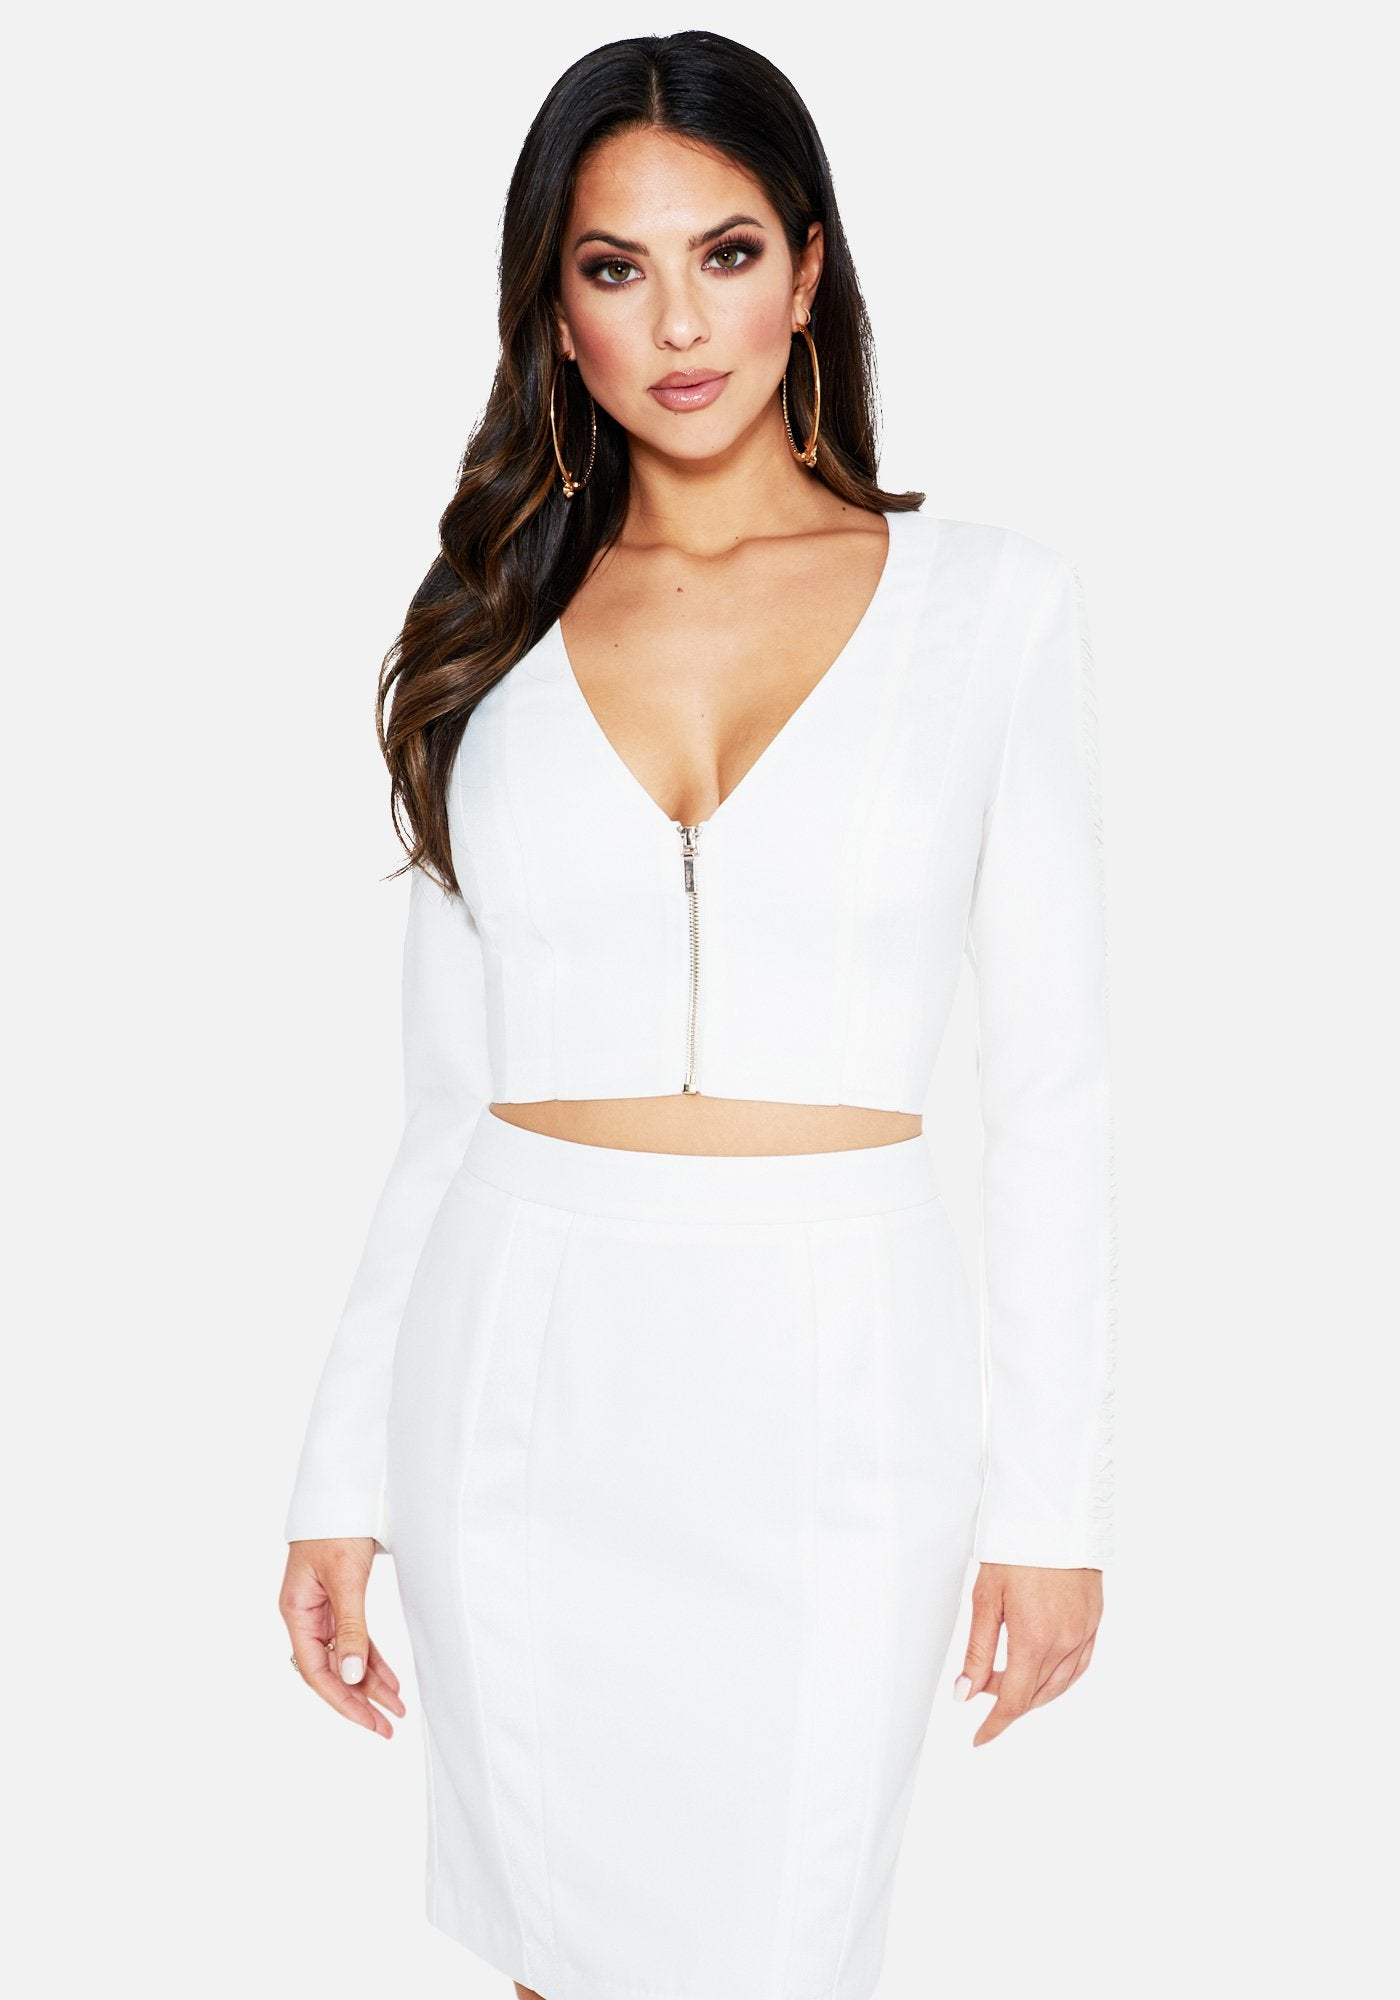 Image of Bebe Women's Insert Detail Long Sleeve Jacket, Size 0 in BRIGHT WHITE Polyester